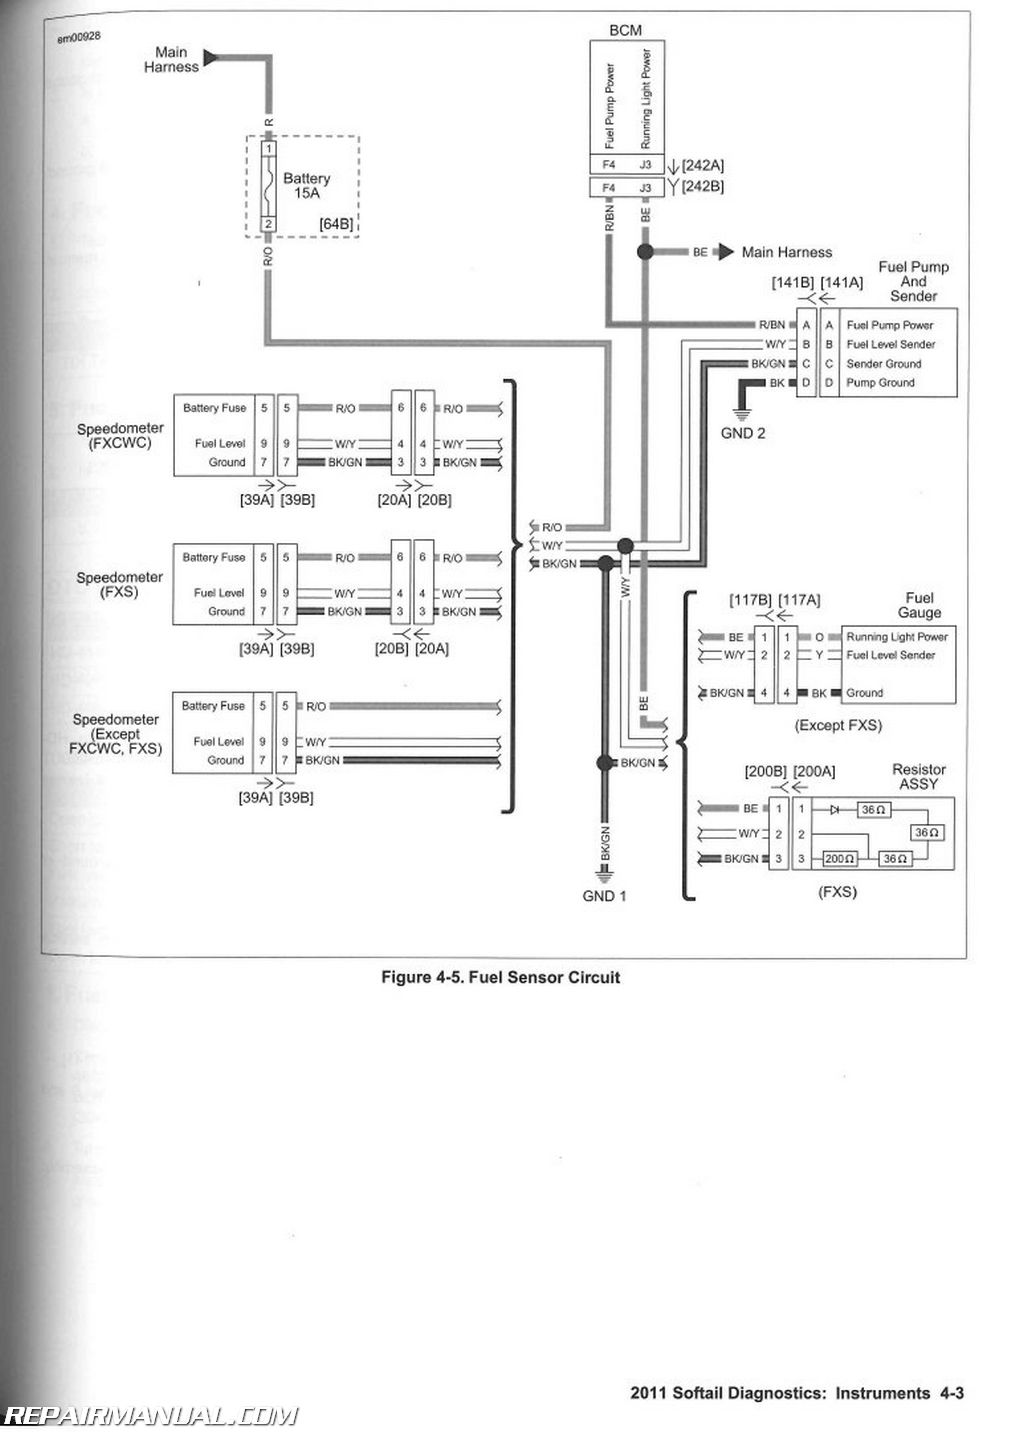 Harley Indicator Wiring Diagram : Harley davidson softail motorcycle electrical